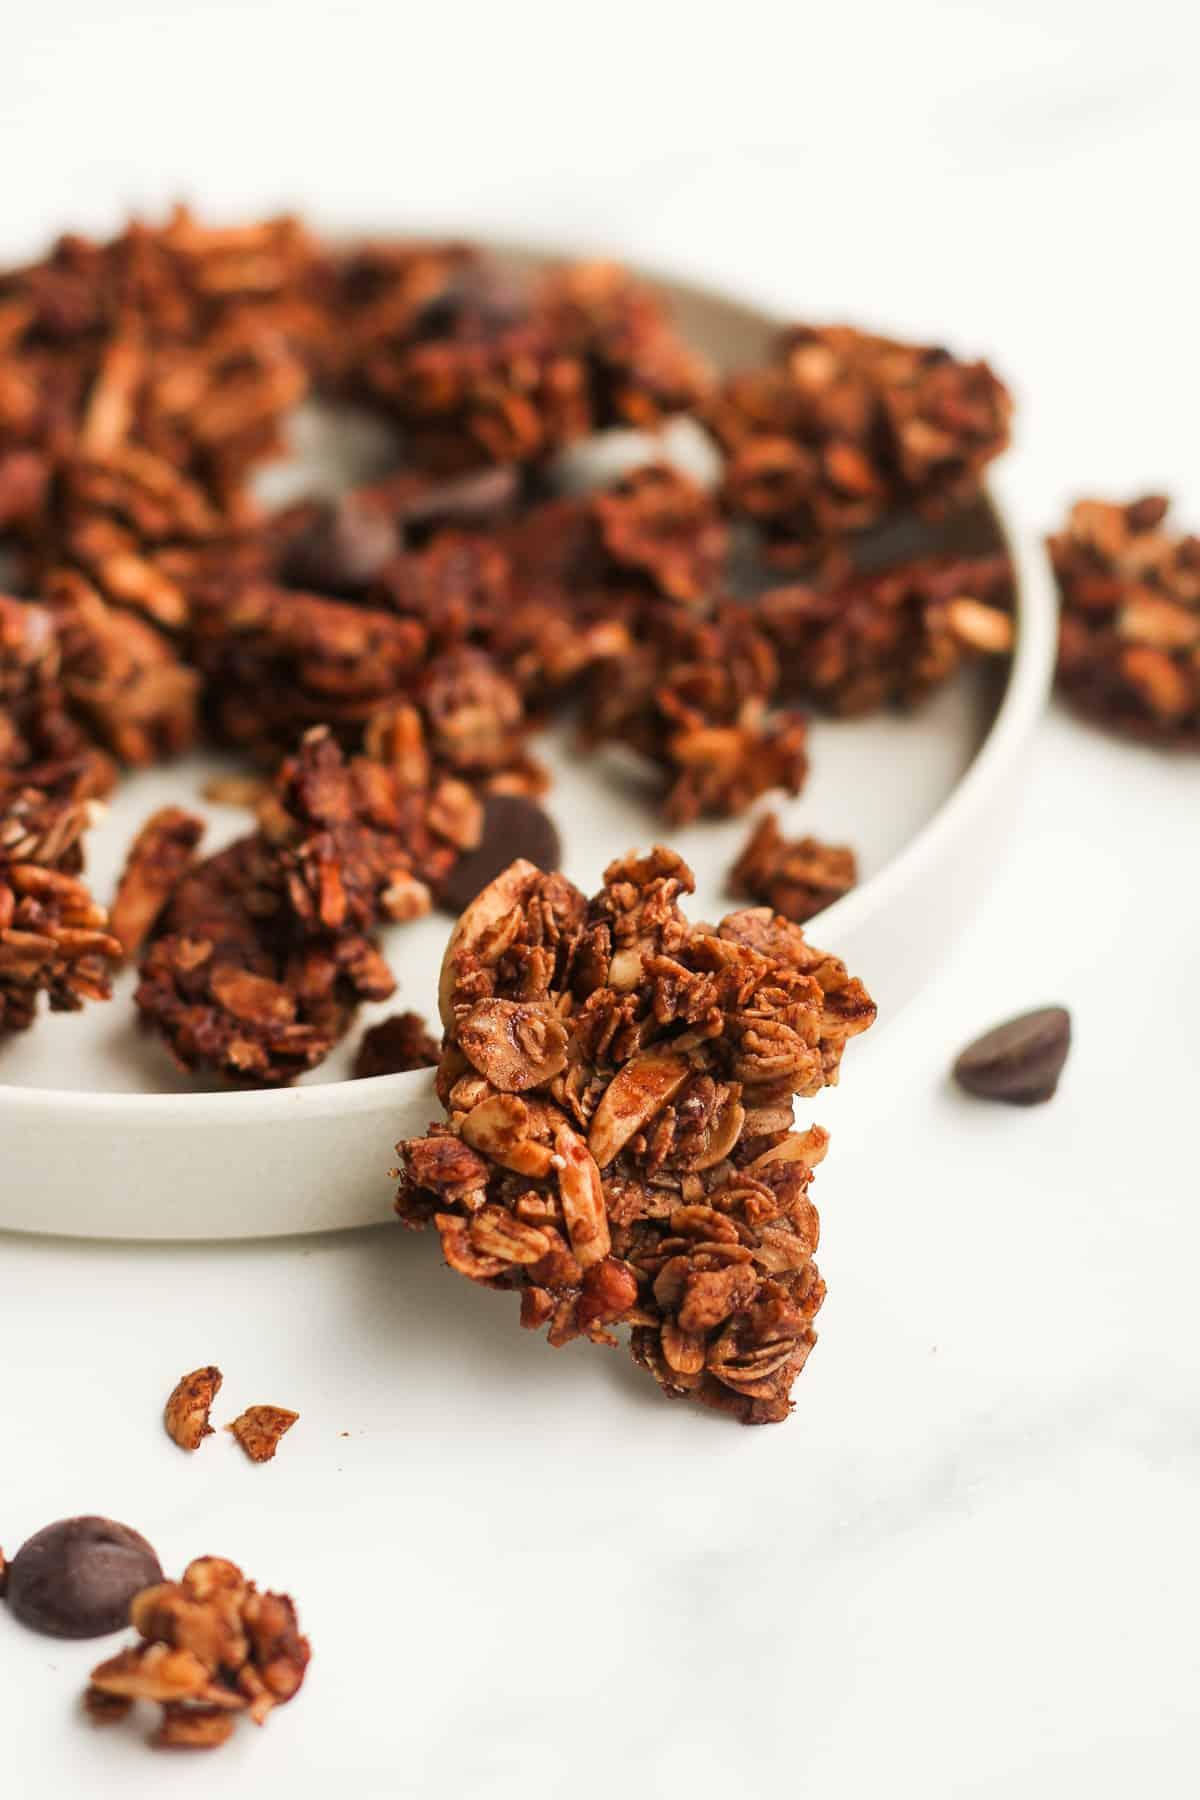 Side shot of a chocolate granola cluster by a plate.